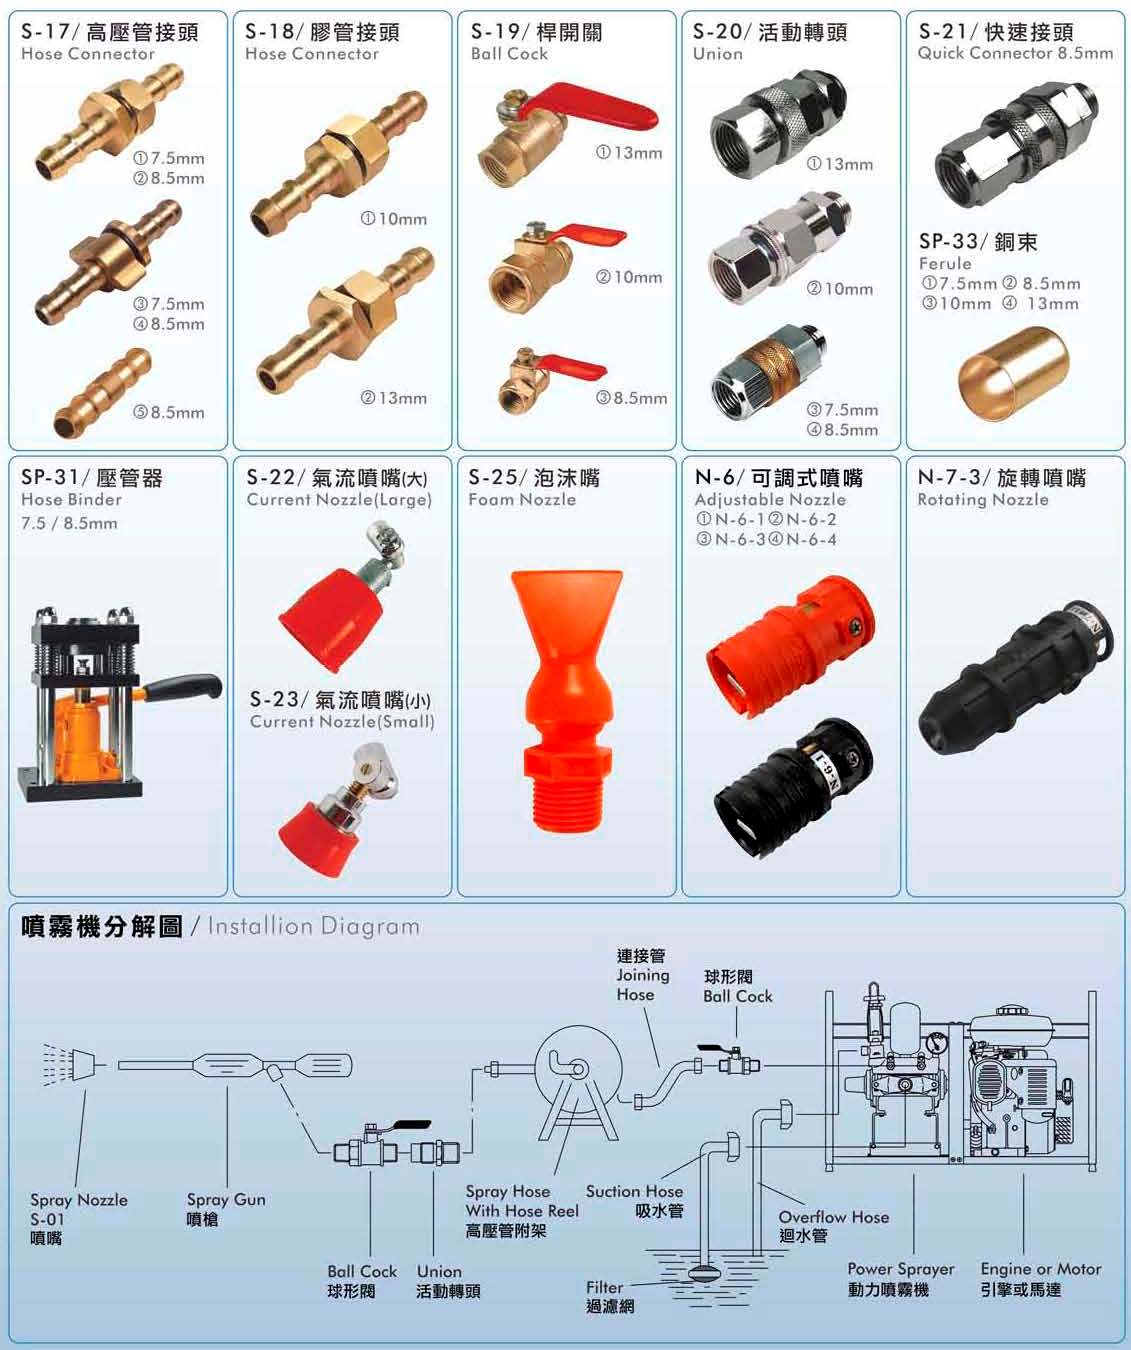 proimages/product/POWER_SPRAYER/accessory/Catalog_p13.jpg